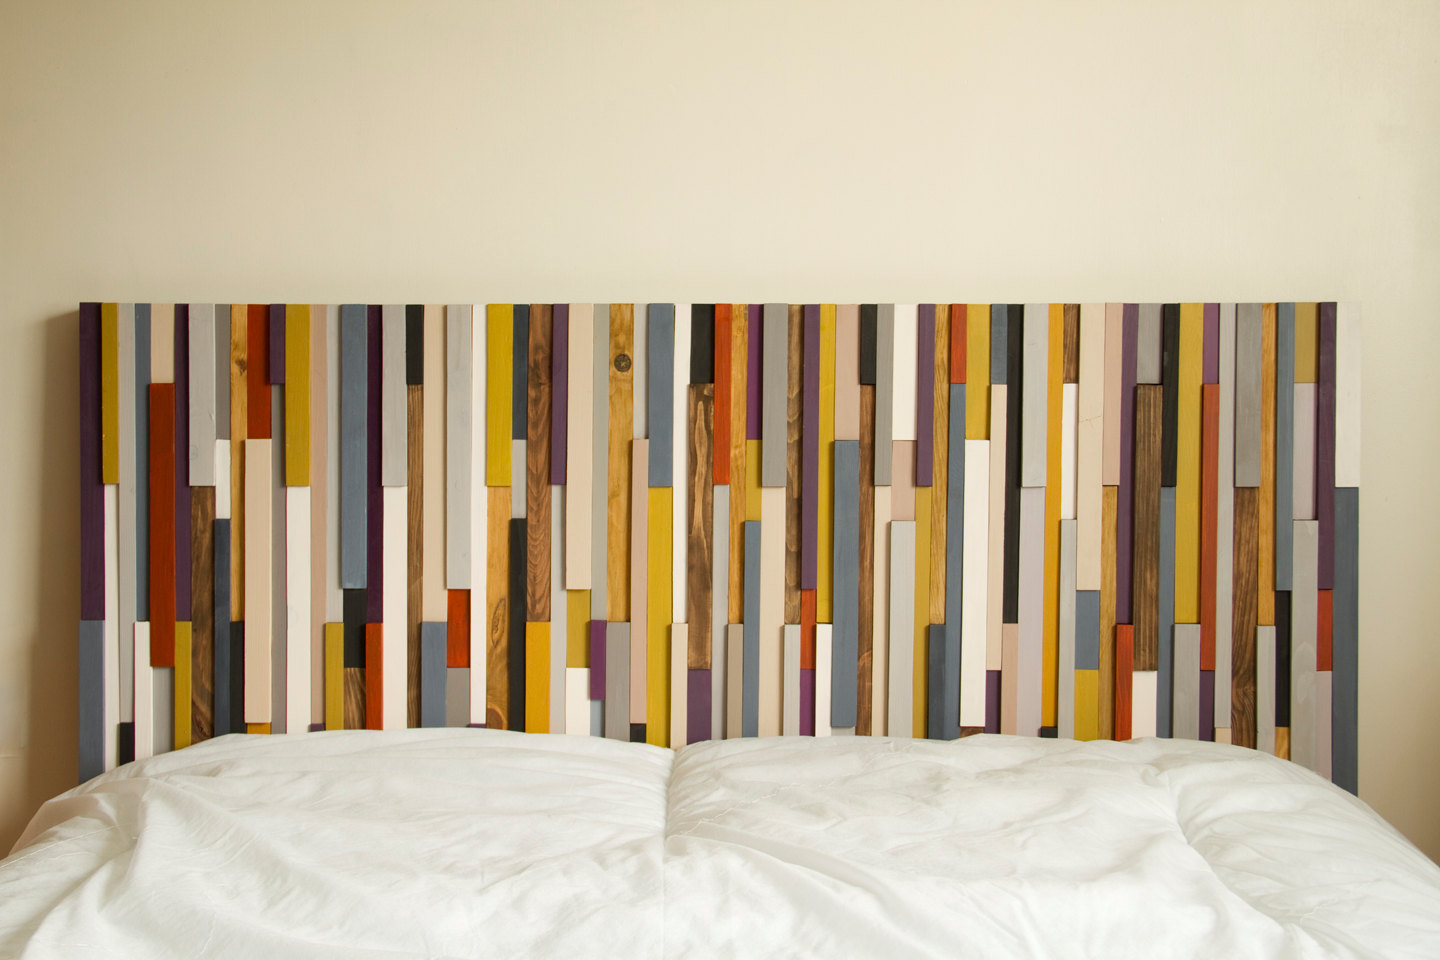 Reclaimed Wood Art, wall sculpture 3D framed, painted wood pieces, mustard, aubergine, beige, walnut, yew, oak